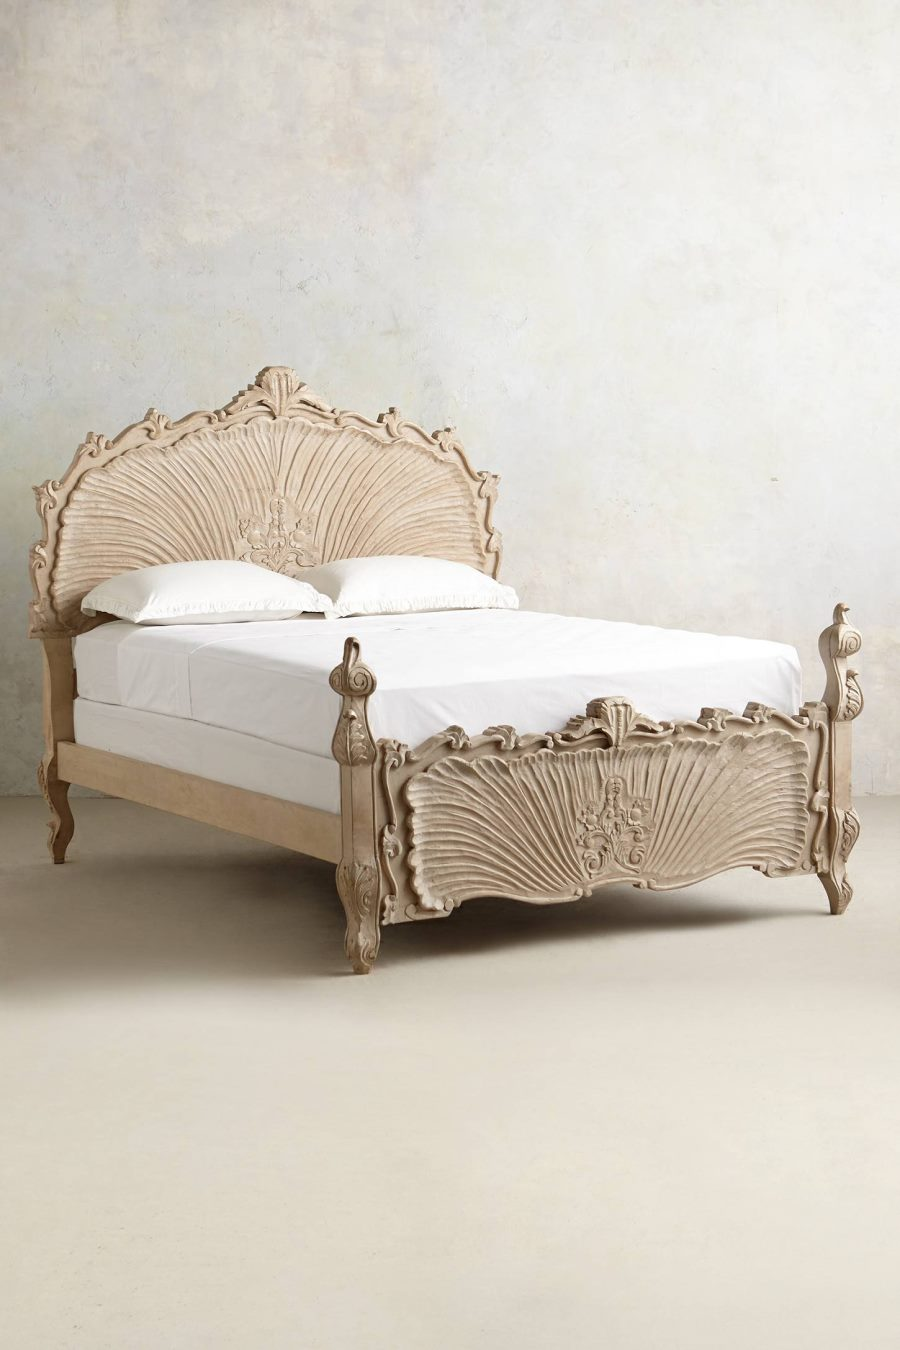 Shell-motif bed from Anthropologie